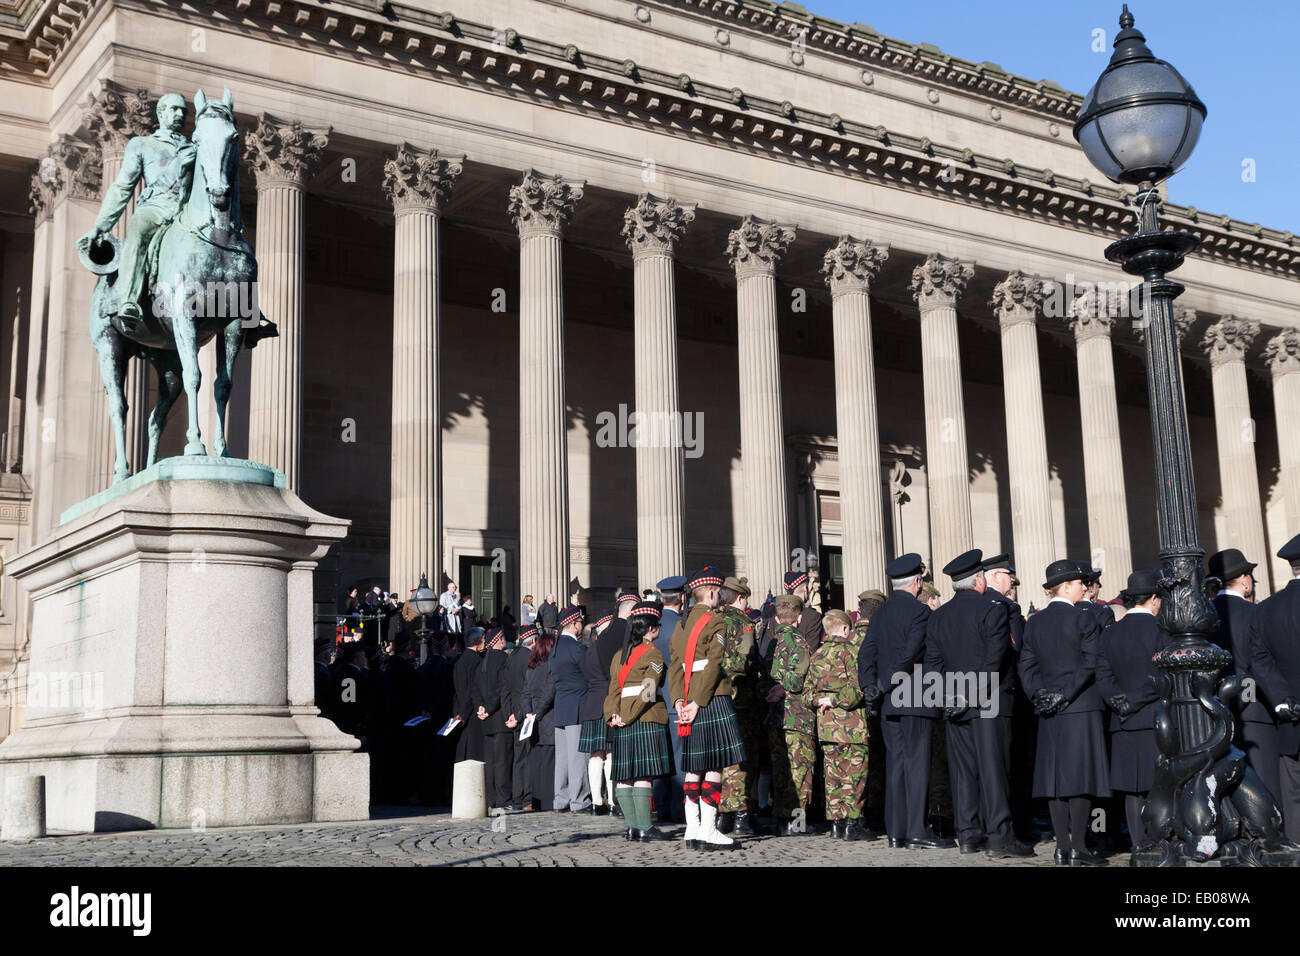 Veterans and serving members of the military line up outside St George's Hall in Liverpool on Remembrance Day - Stock Image